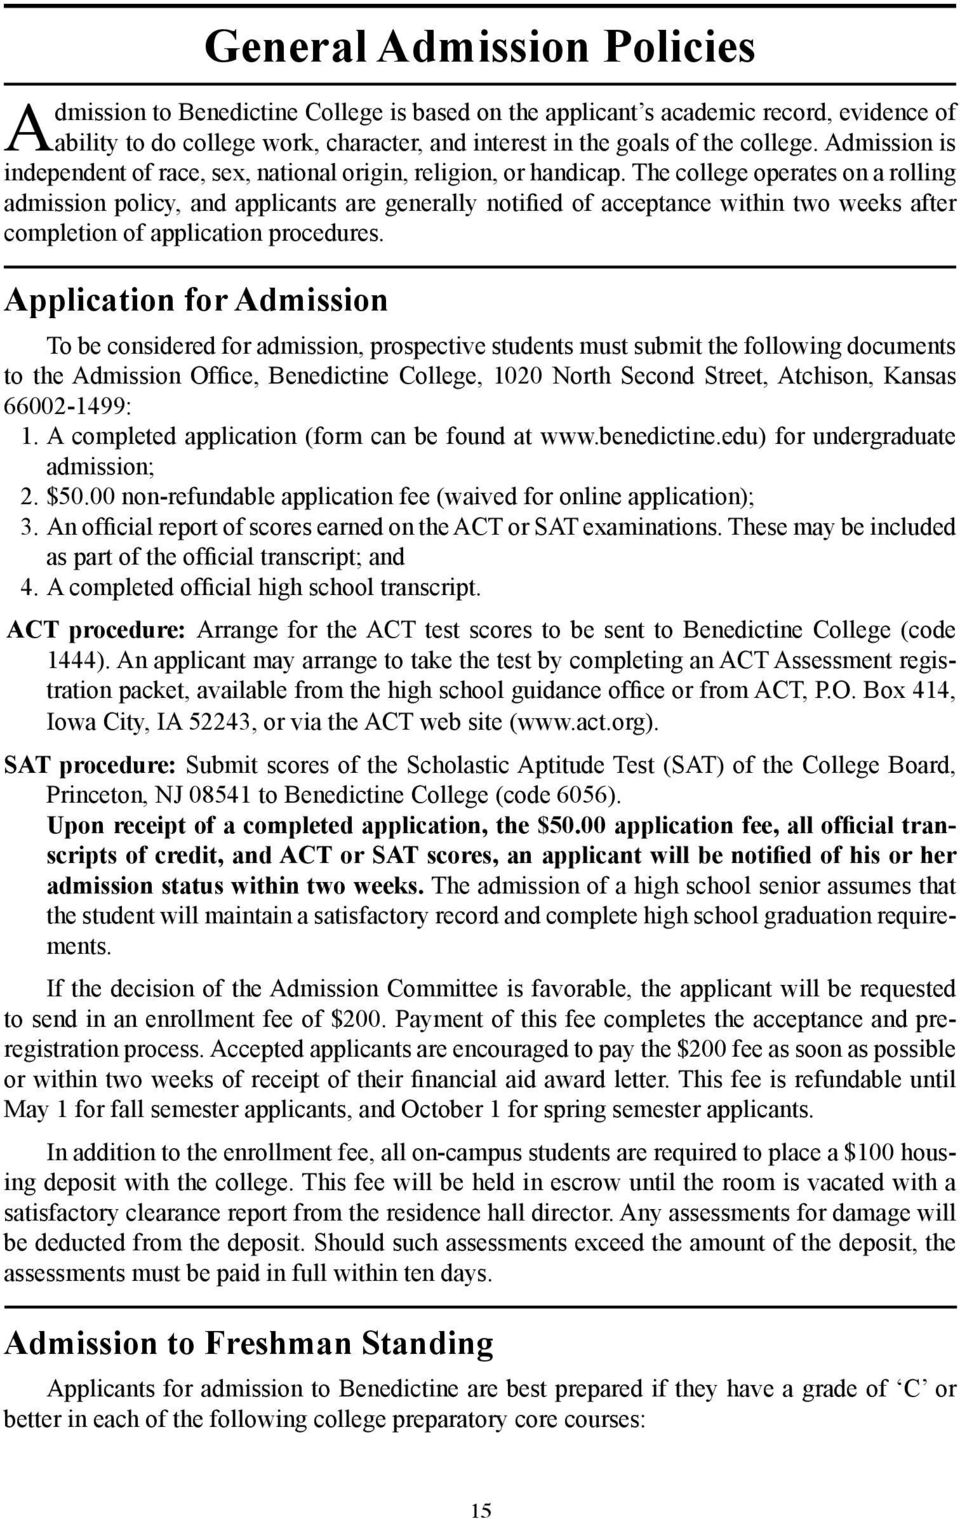 The college operates on a rolling admission policy, and applicants are generally notified of acceptance within two weeks after completion of application procedures.